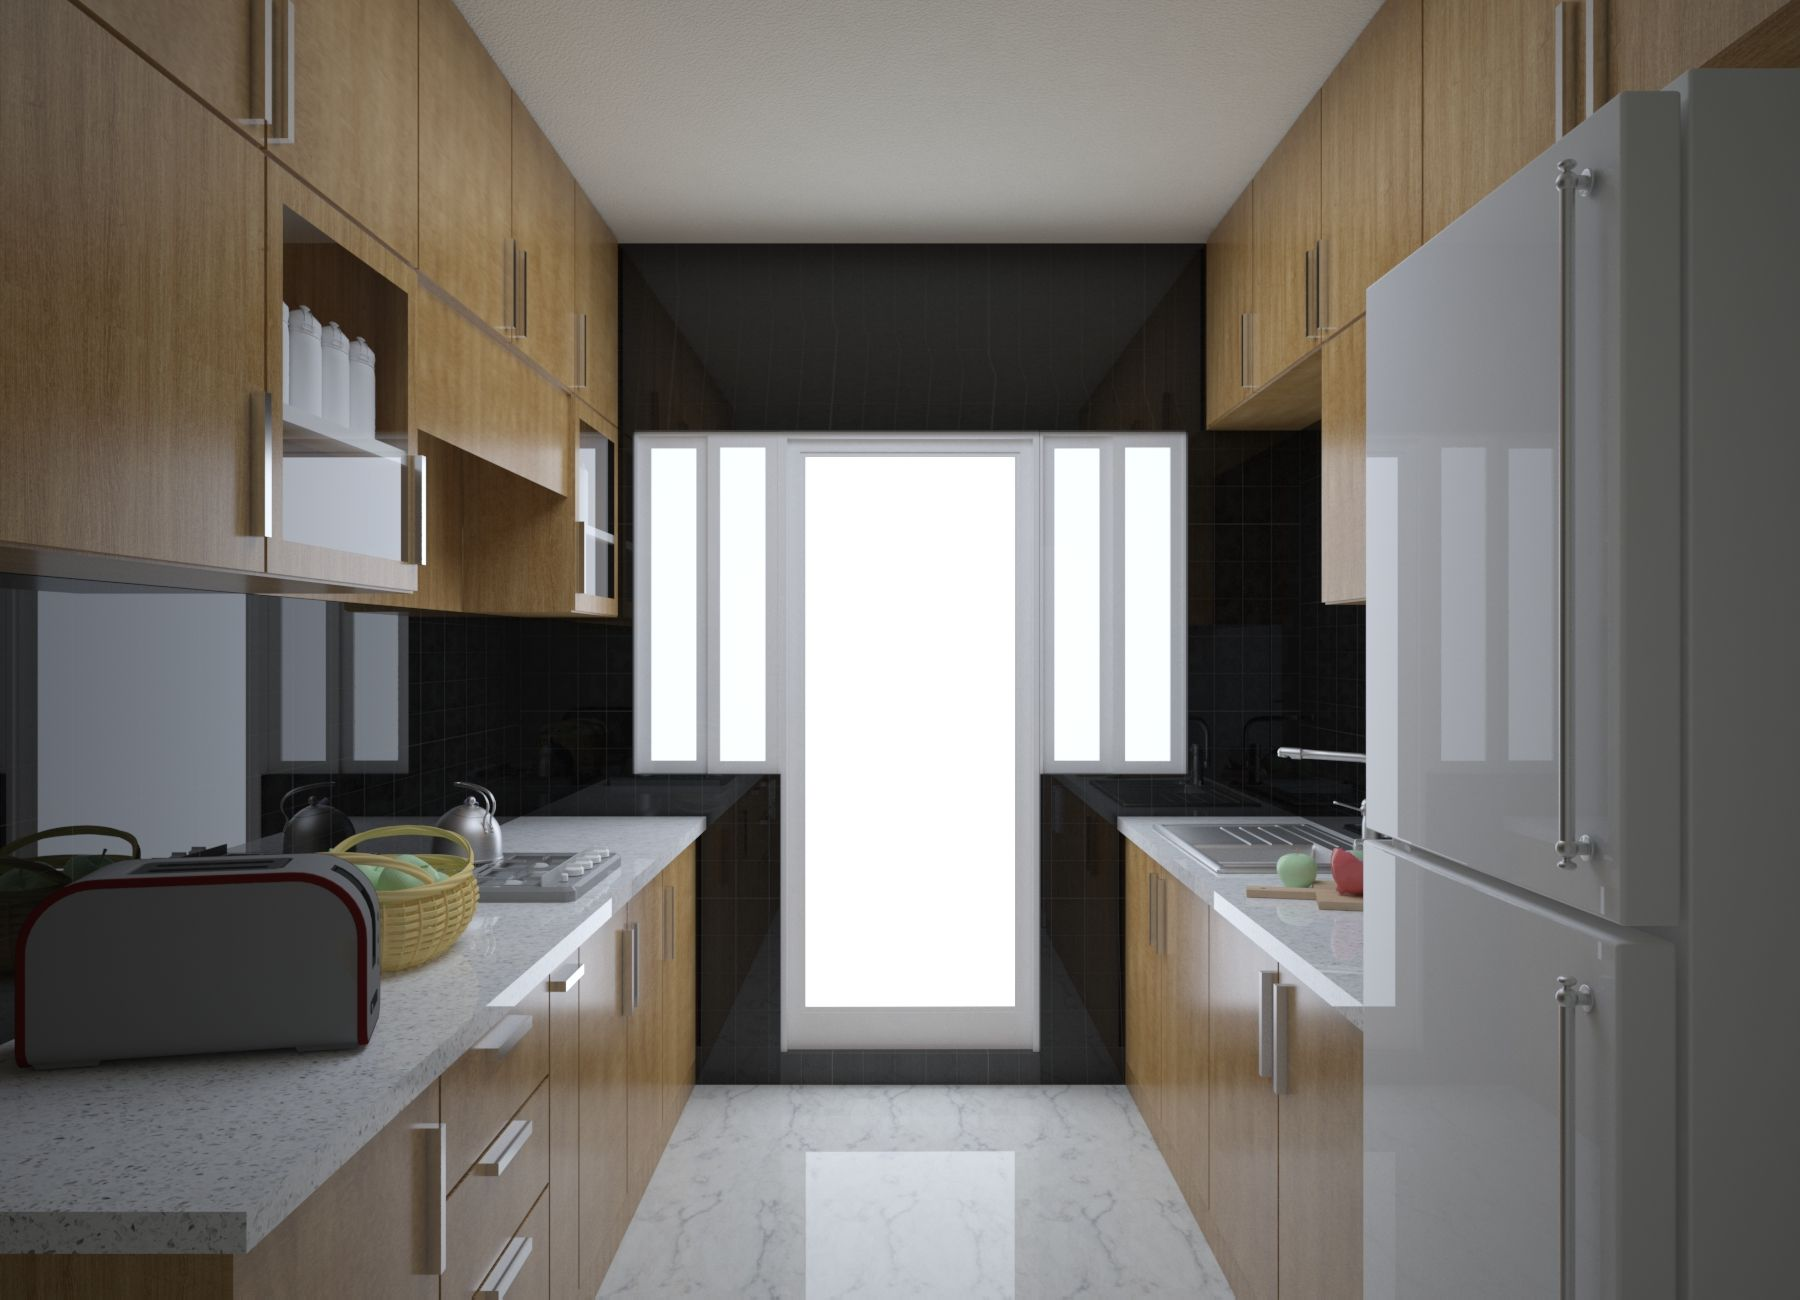 Parallel modular kitchen interior design having complete wood finish making most use of your also the best creative designers images on pinterest in rh